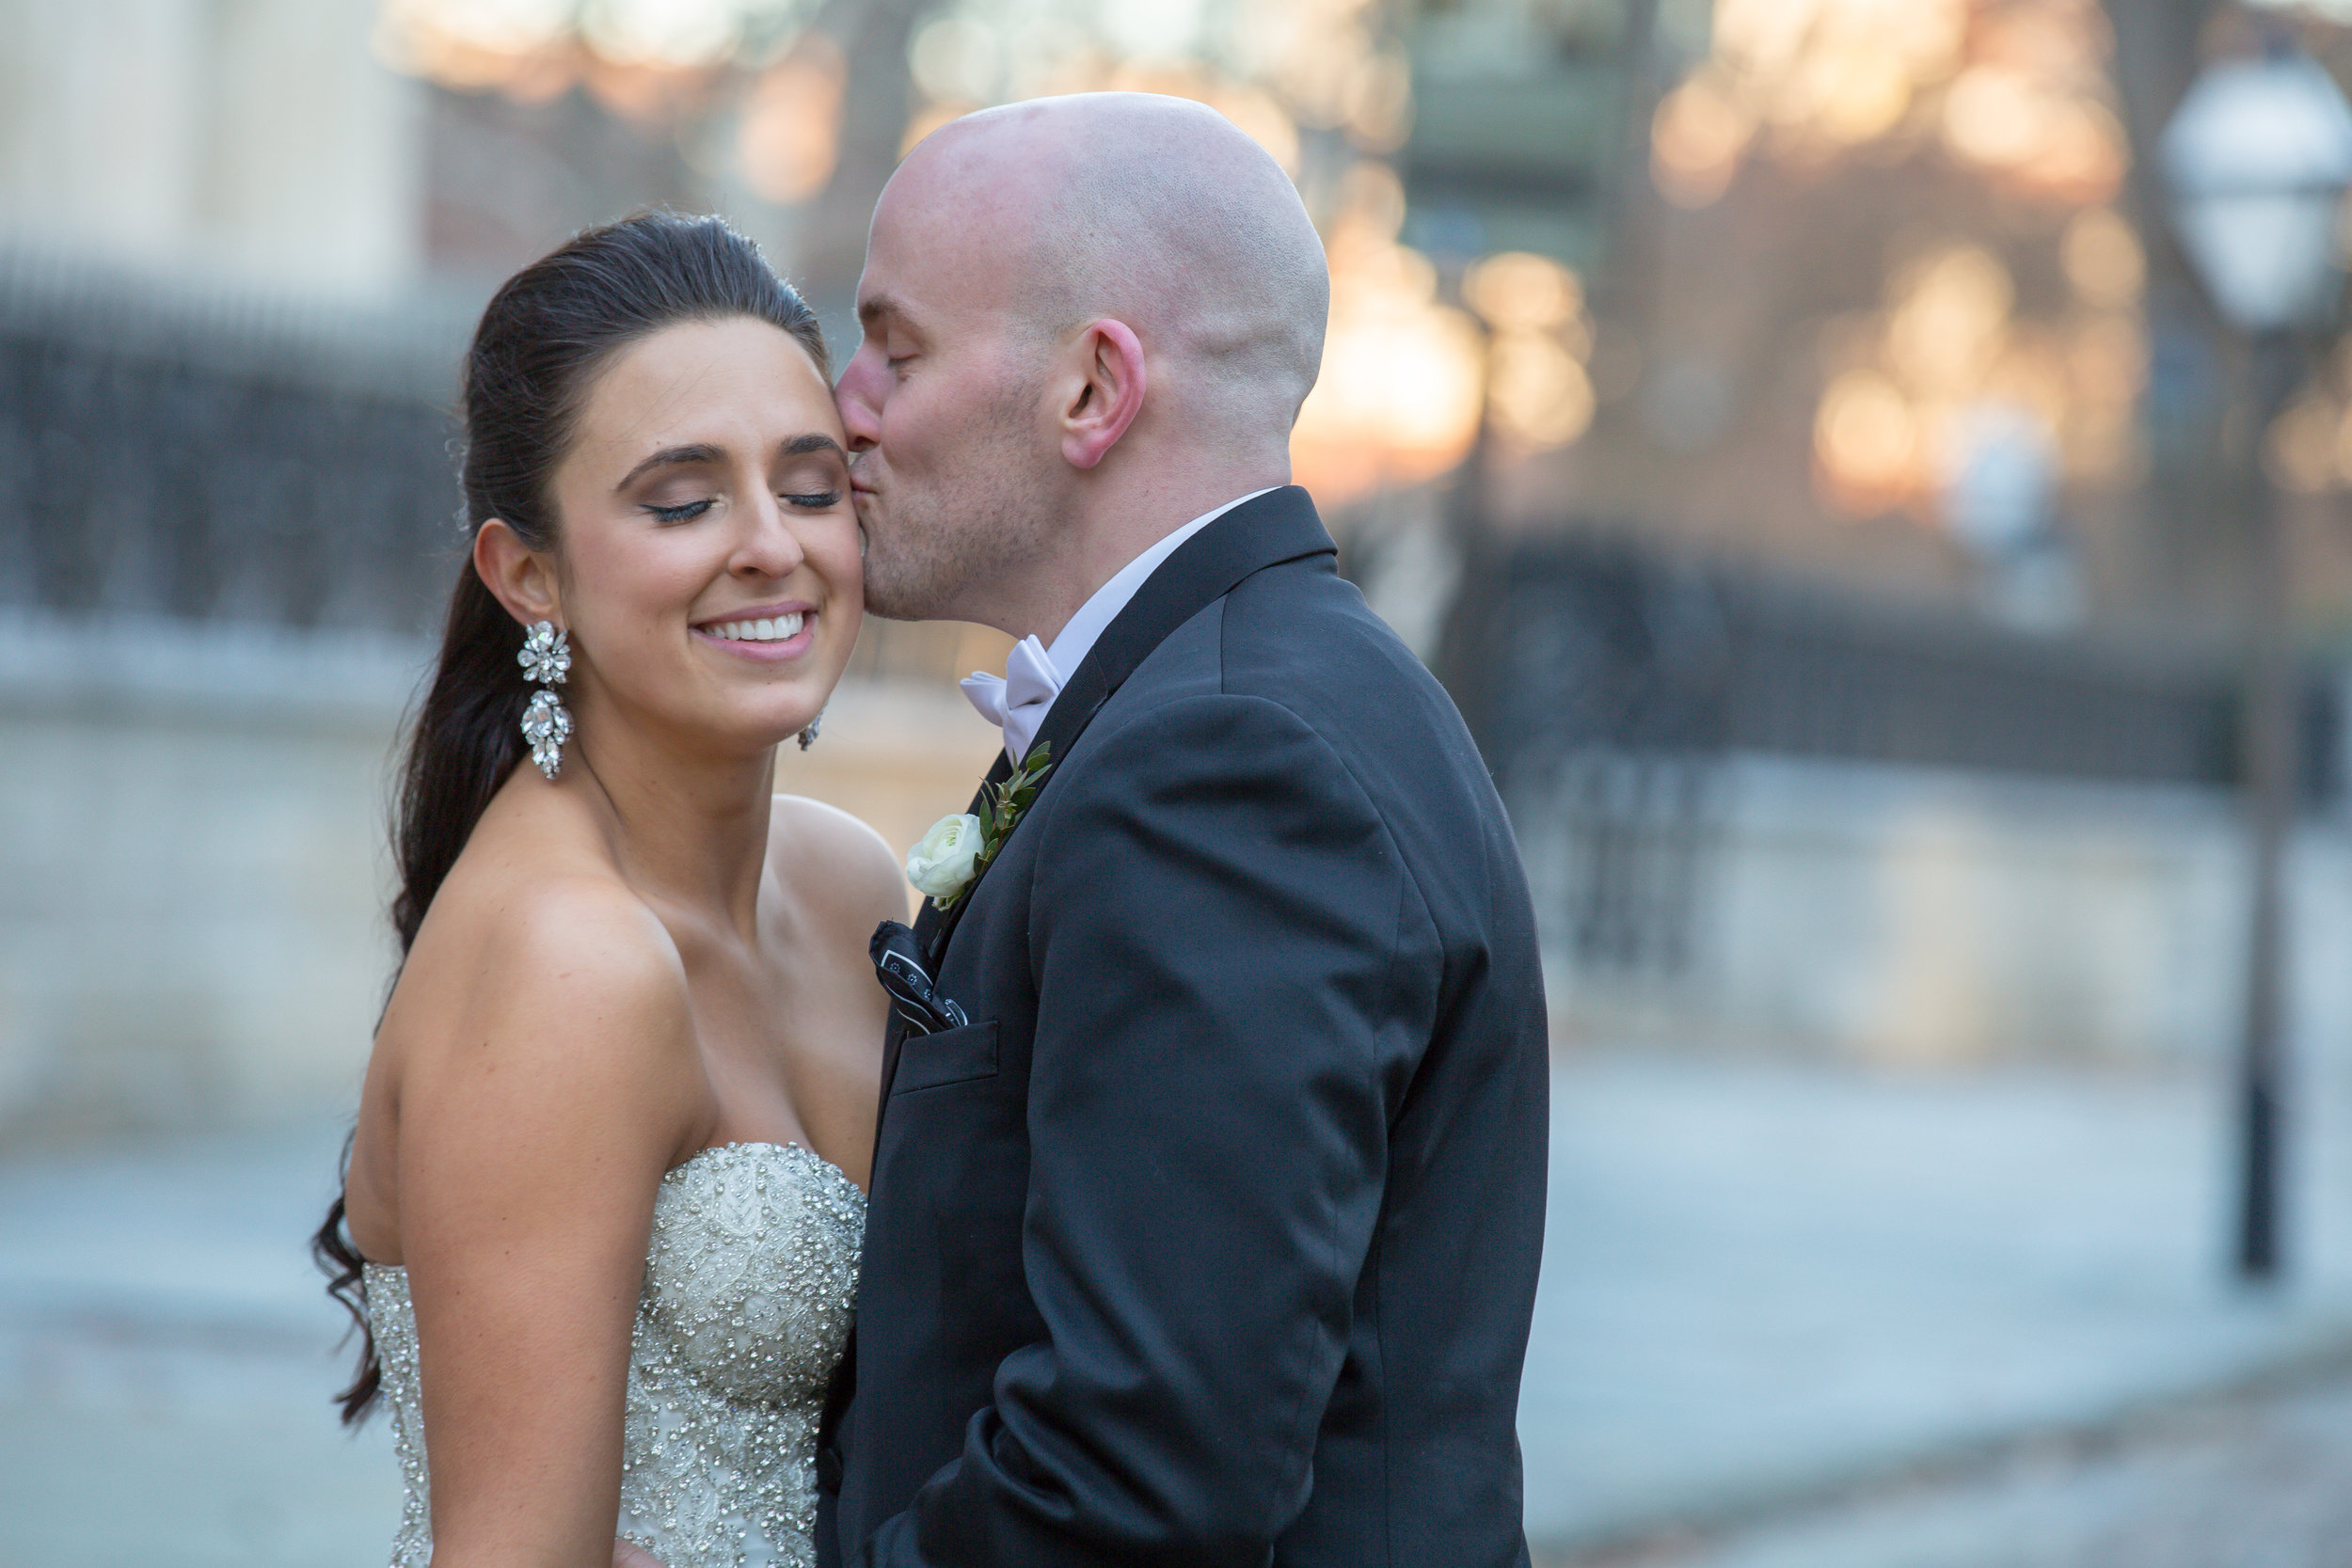 henry_wedding_kevkramerphoto-482.jpg